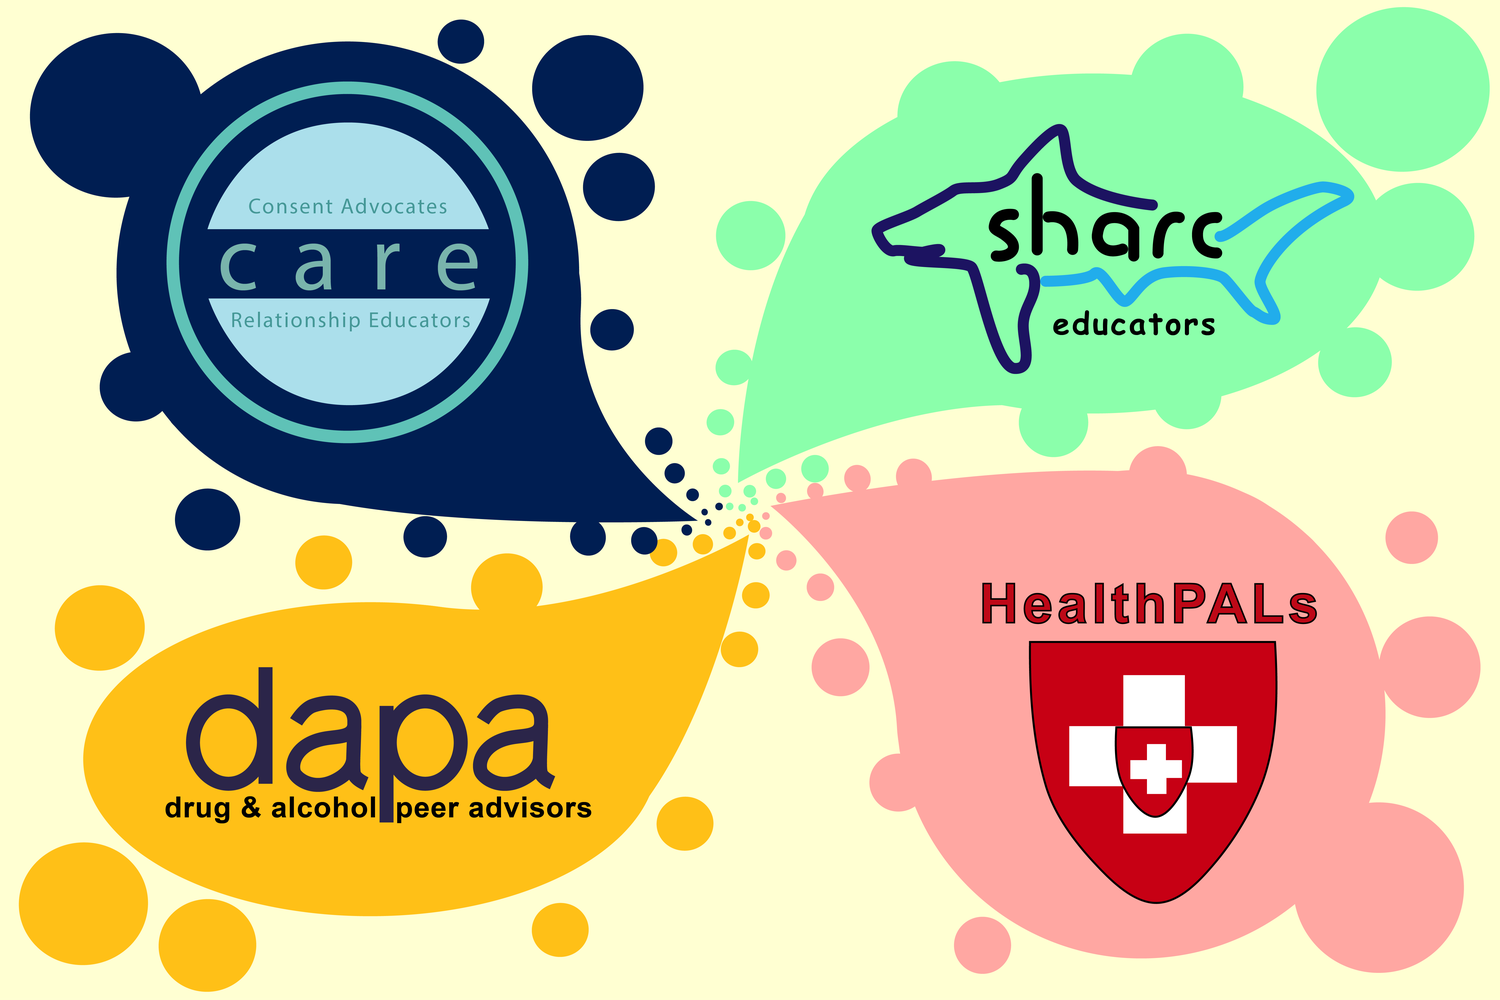 Harvard University Health Services plans to merge four former peer health education groups into one program, Wellness Educators, that will launch in fall 2021.